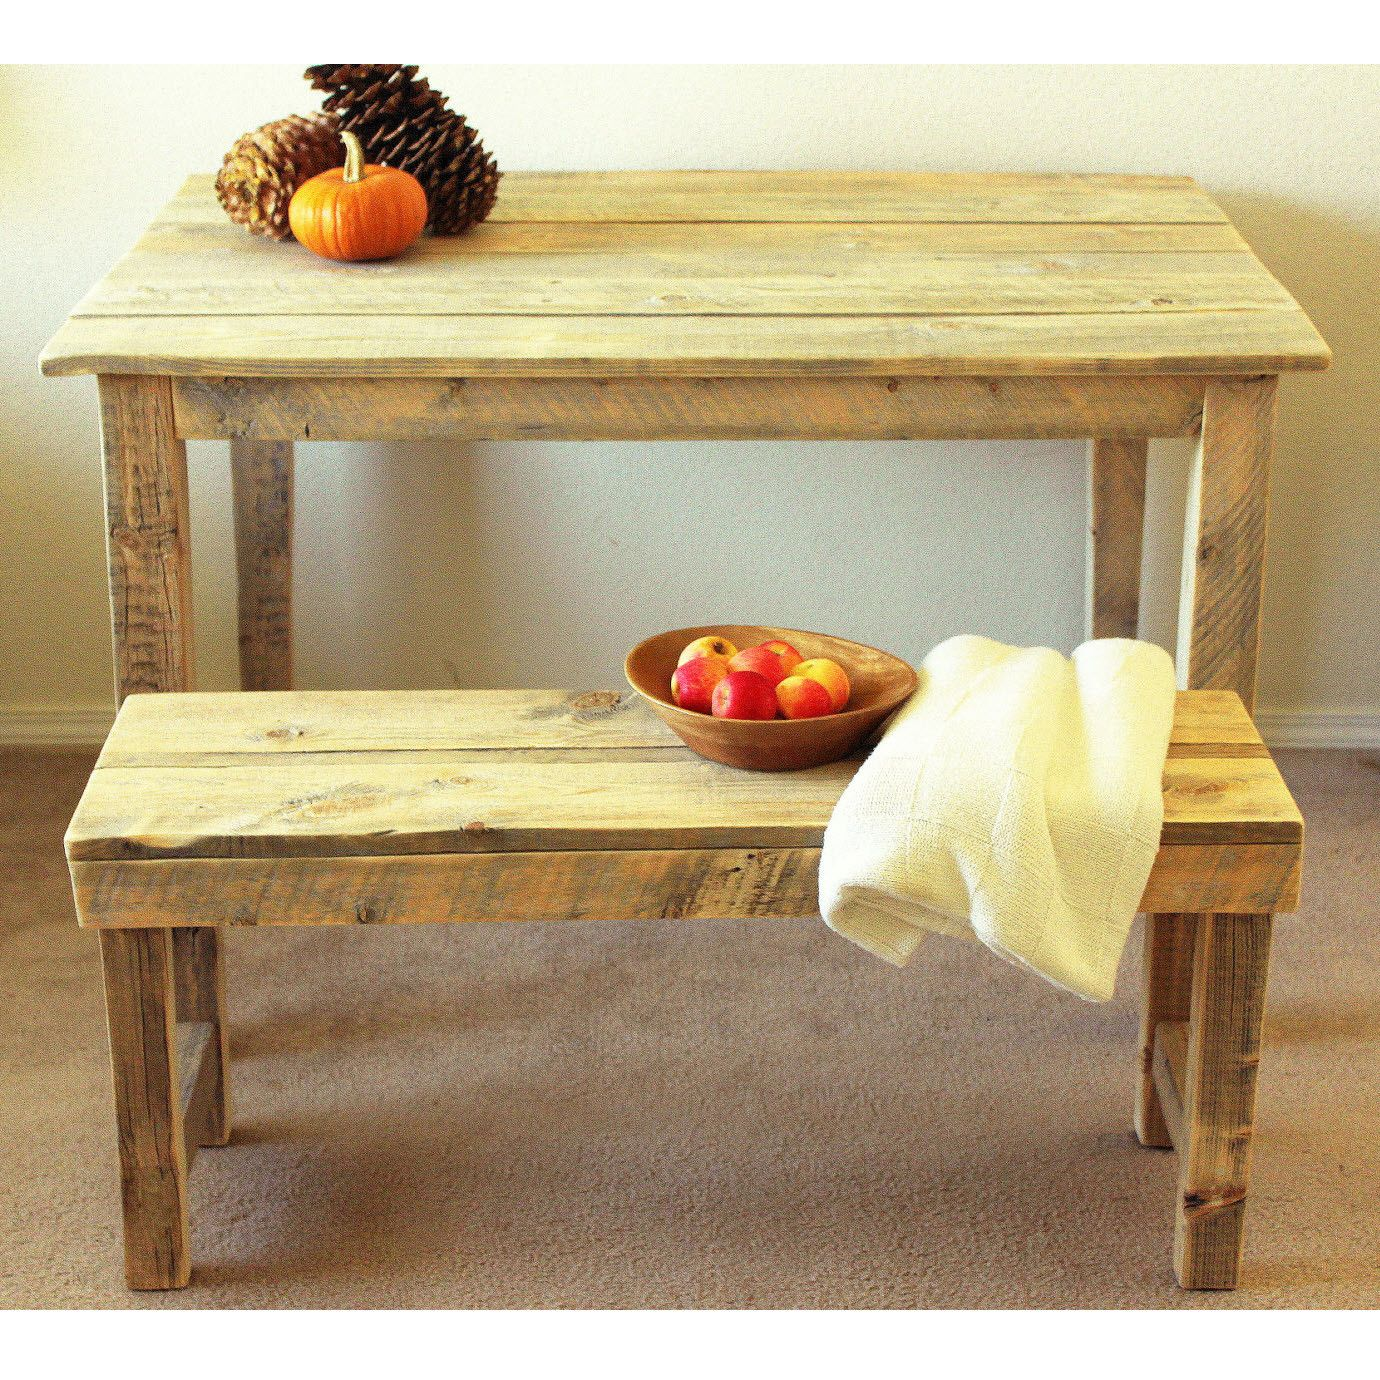 Farm Table With Bench And Chairs: Reclaimed Wood Farmhouse Table & Bench In 2019